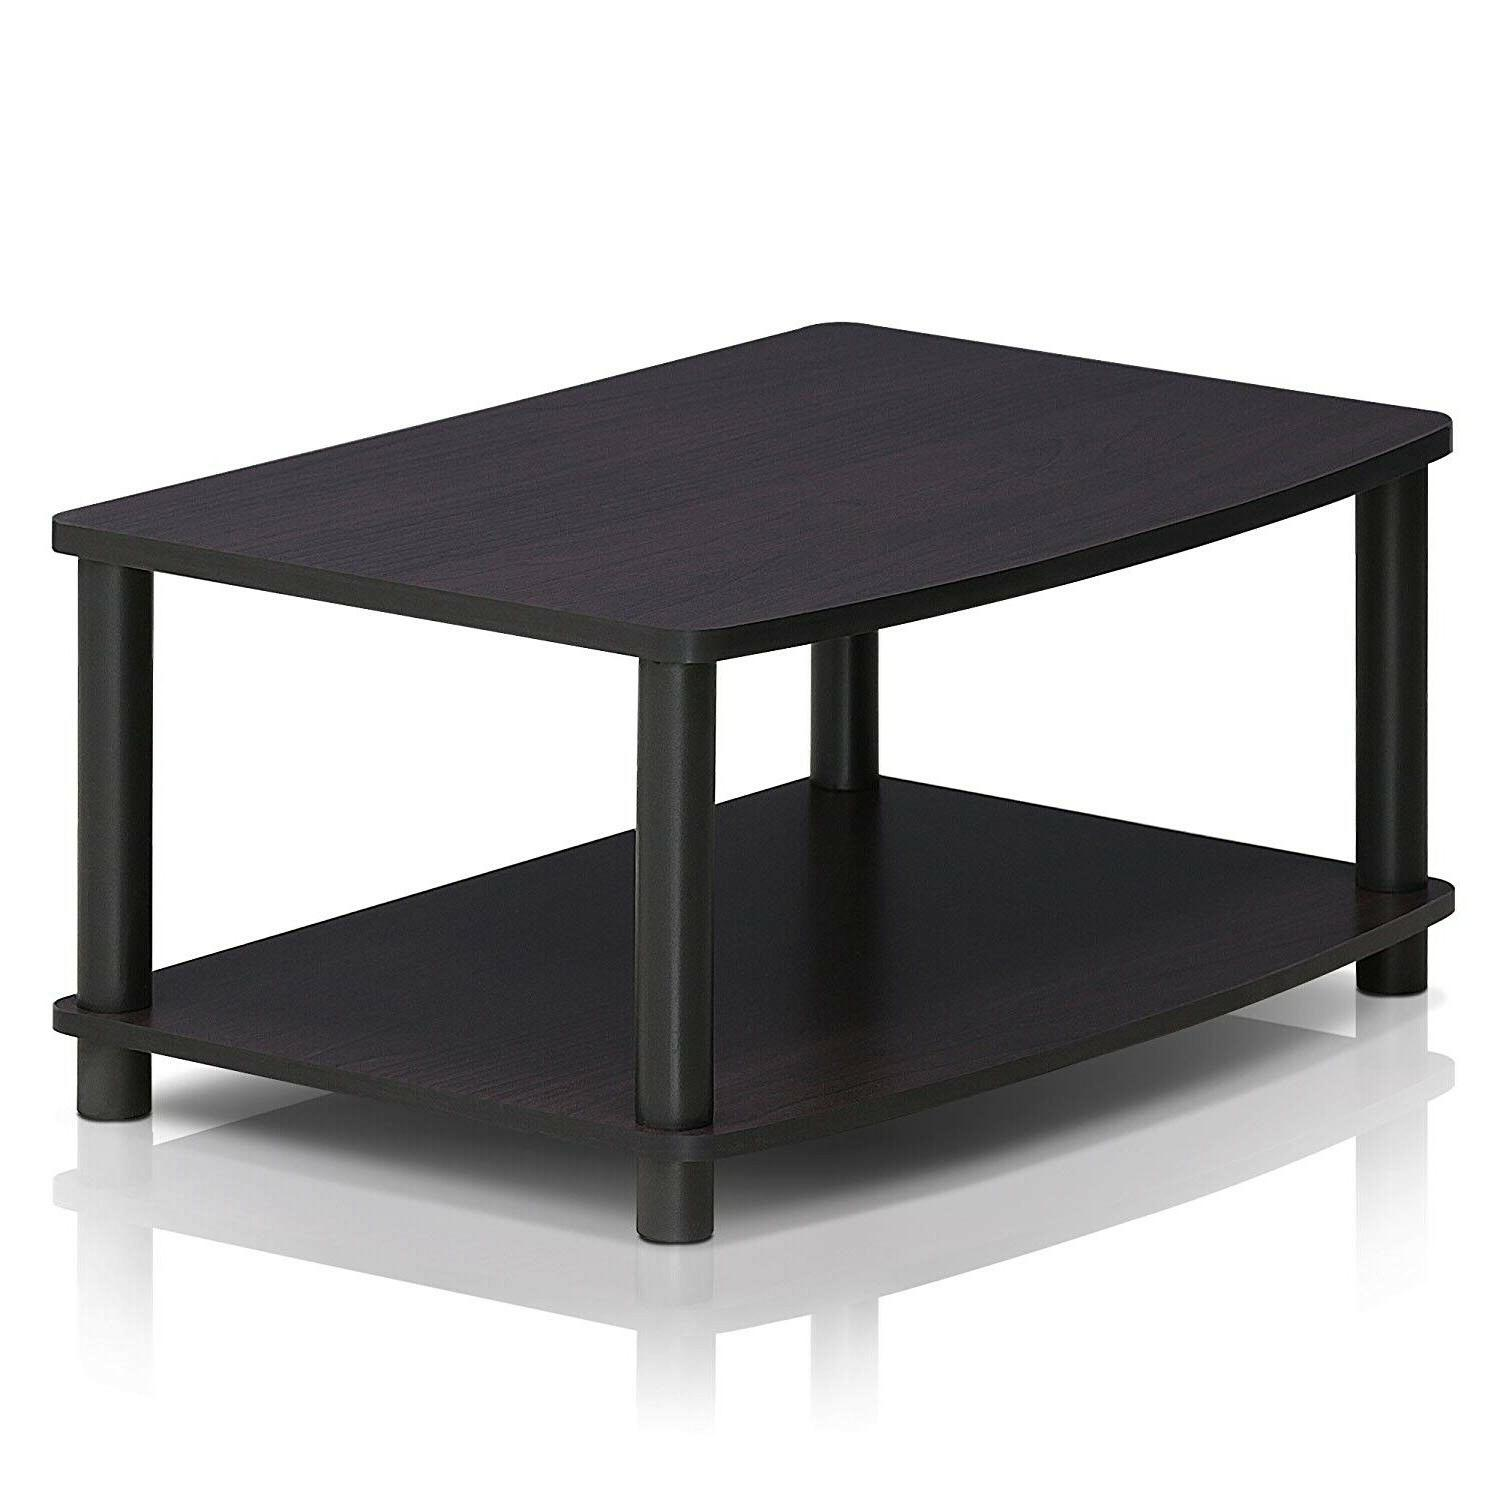 Small With Shelves Media Storage Table For Bedroom Black